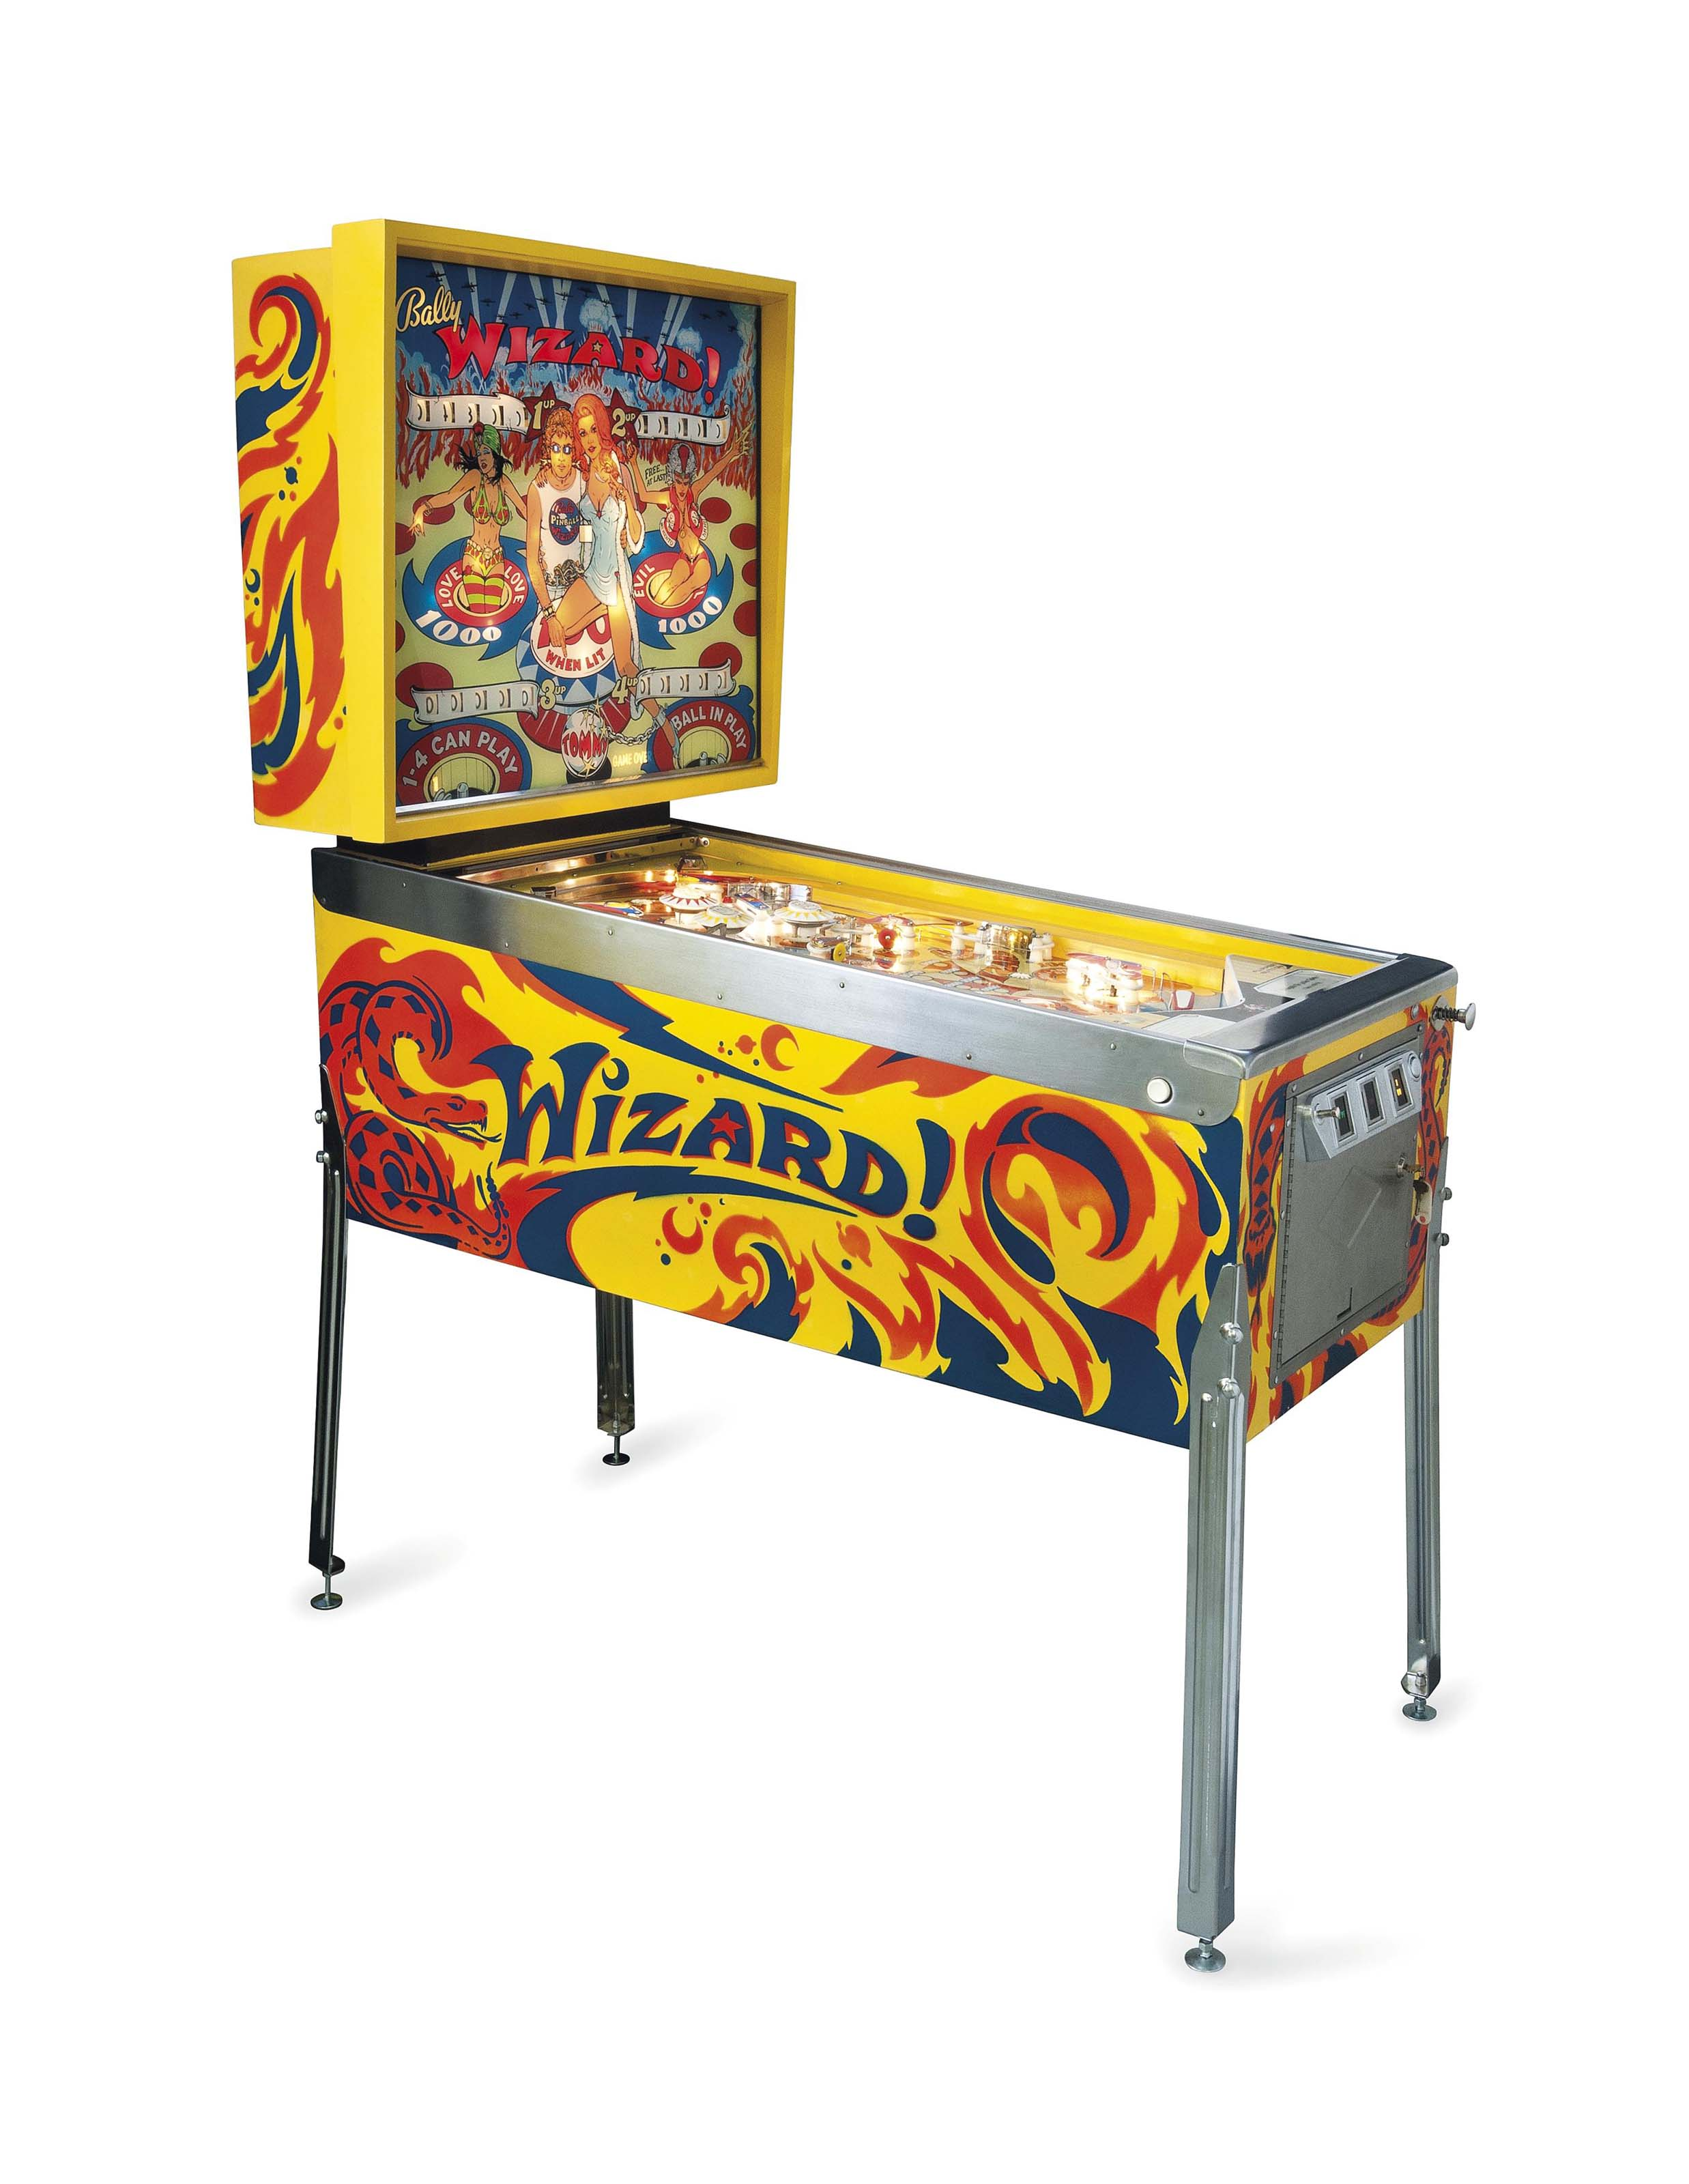 Wizard Pinball Machine For Sale